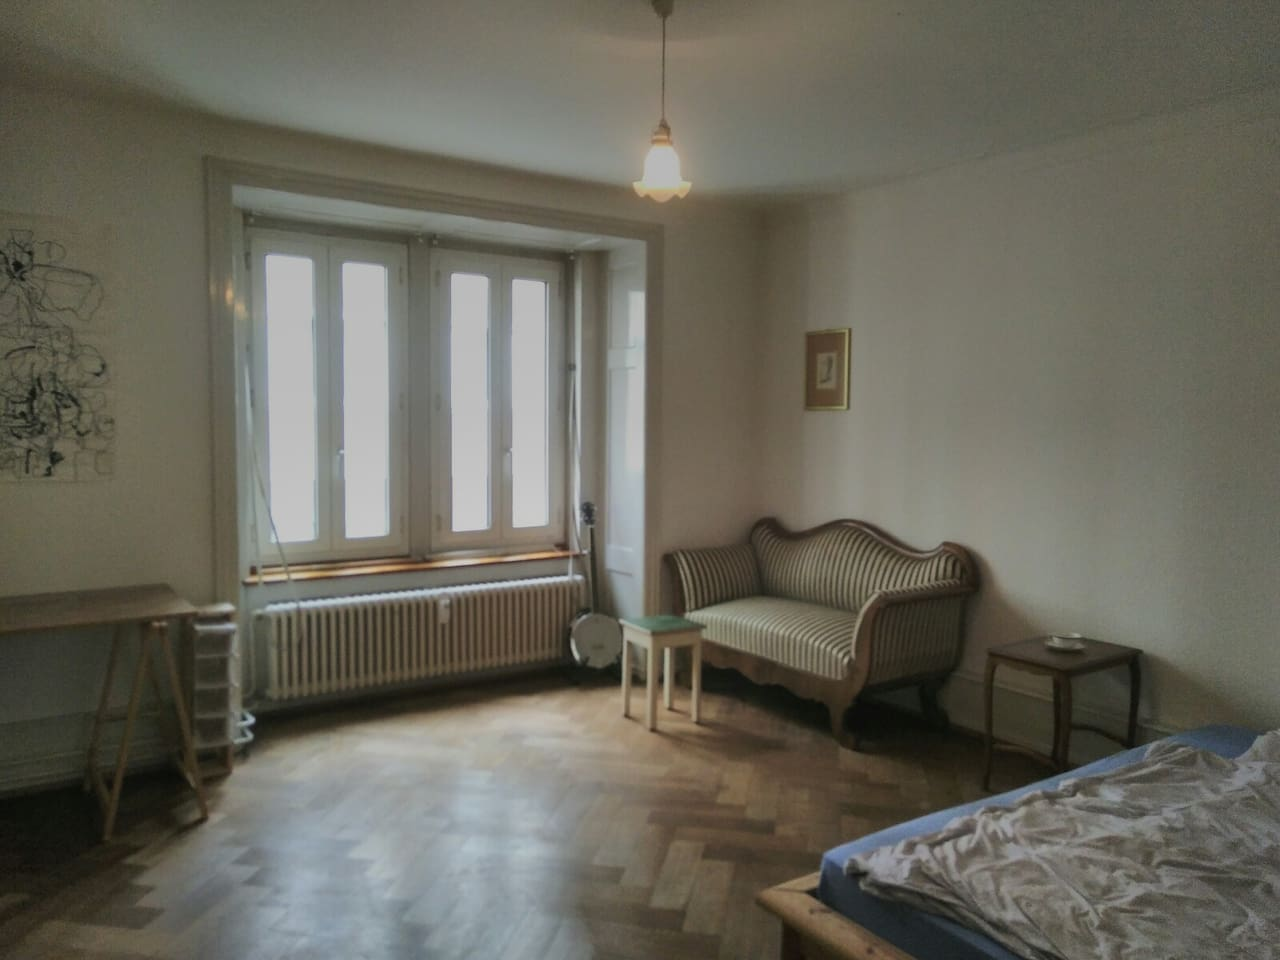 Cozy apartment near to river, exhibition square, museums, old town Kleinbasel